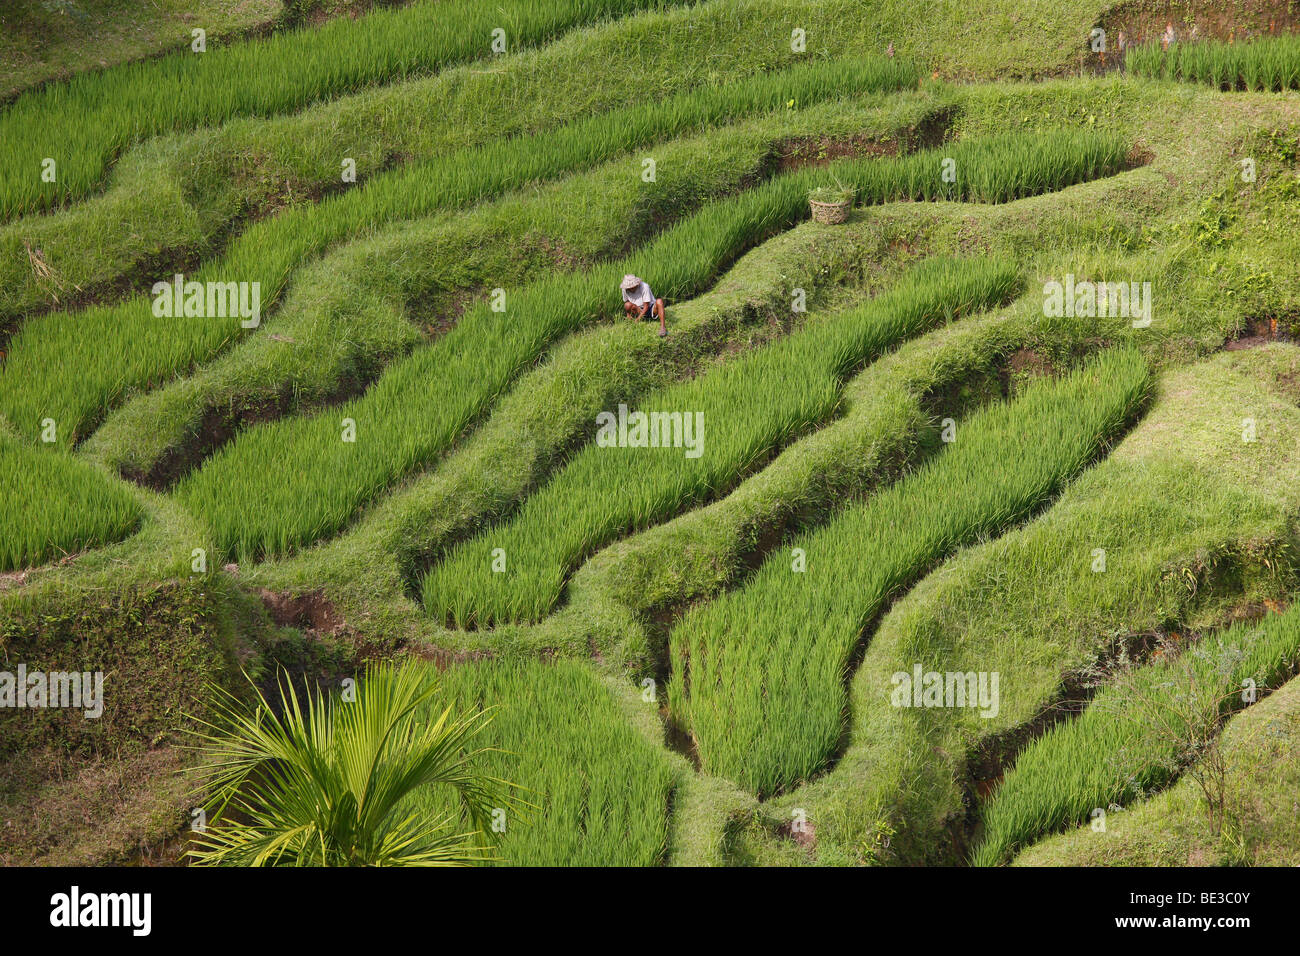 Paddy fields near Tegal Lalang, Bali, Republic of Indonesia, Southeast Asia - Stock Image